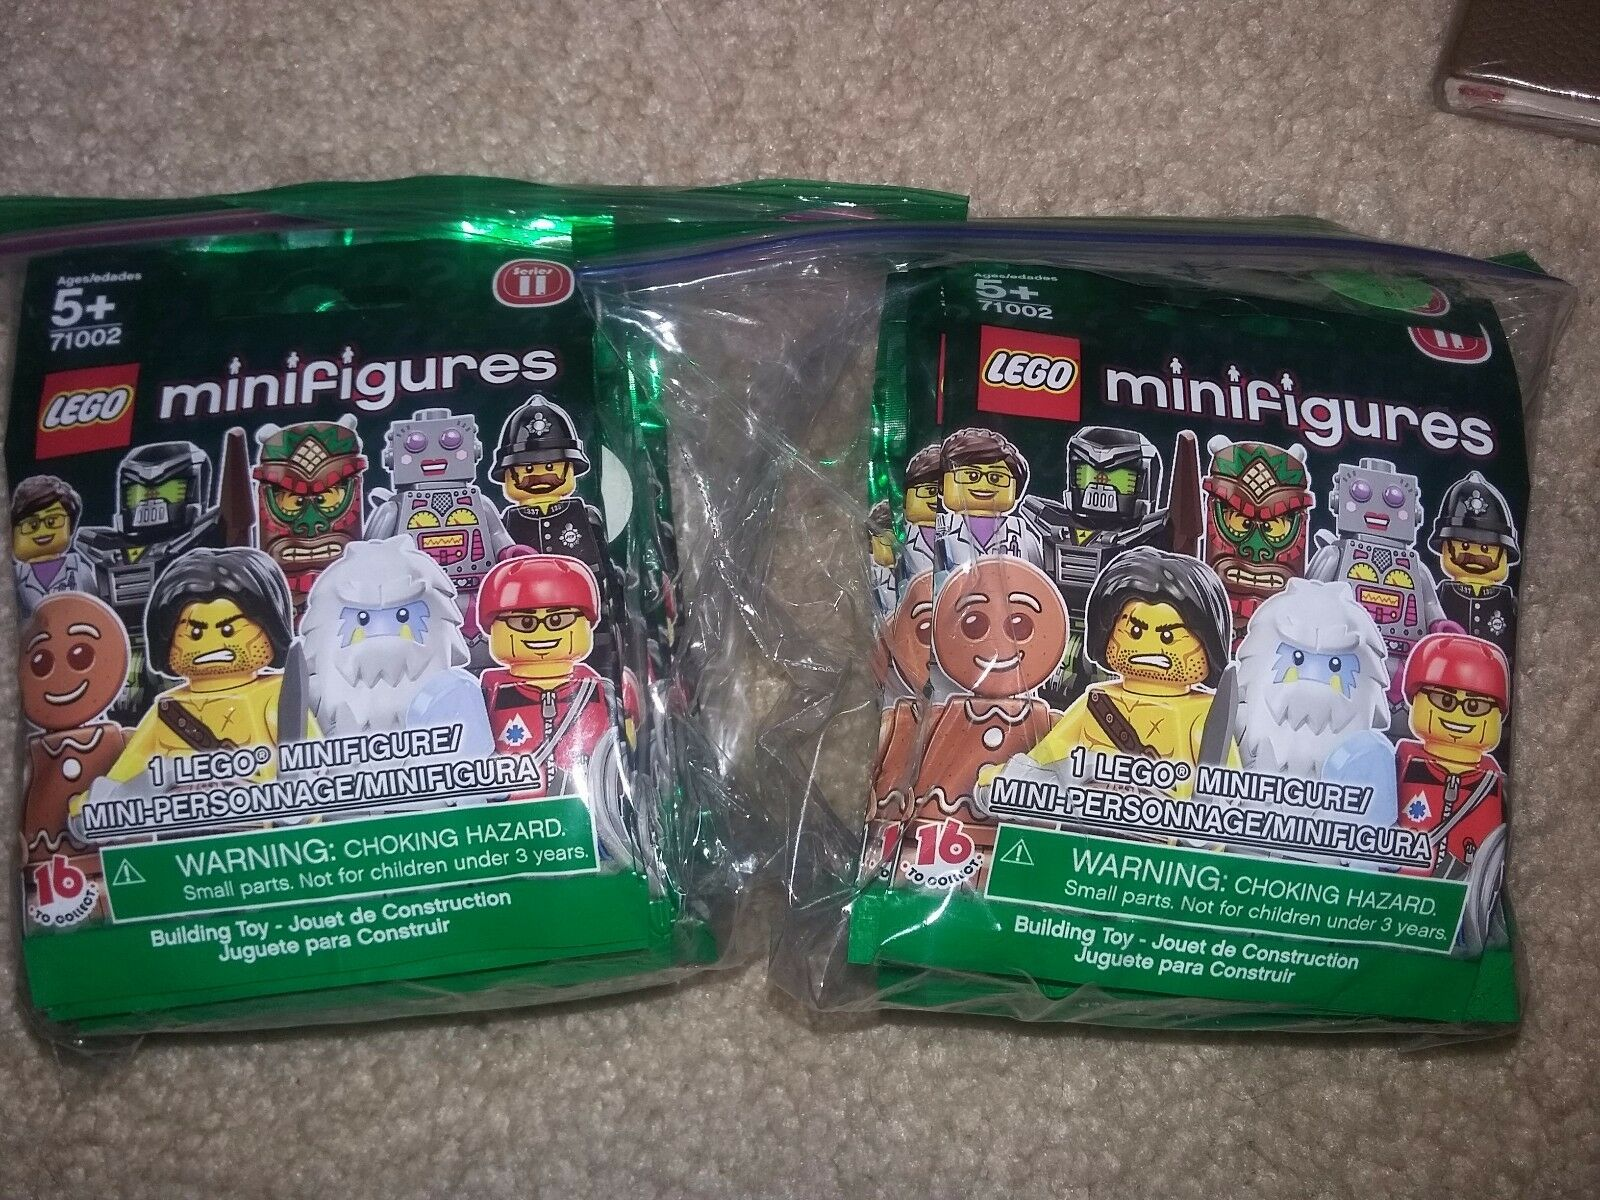 LEGO CMF Collectible Minifigures Minifigures Minifigures Series 11 71002 Complete Set of 16 New Sealed 88b6c8